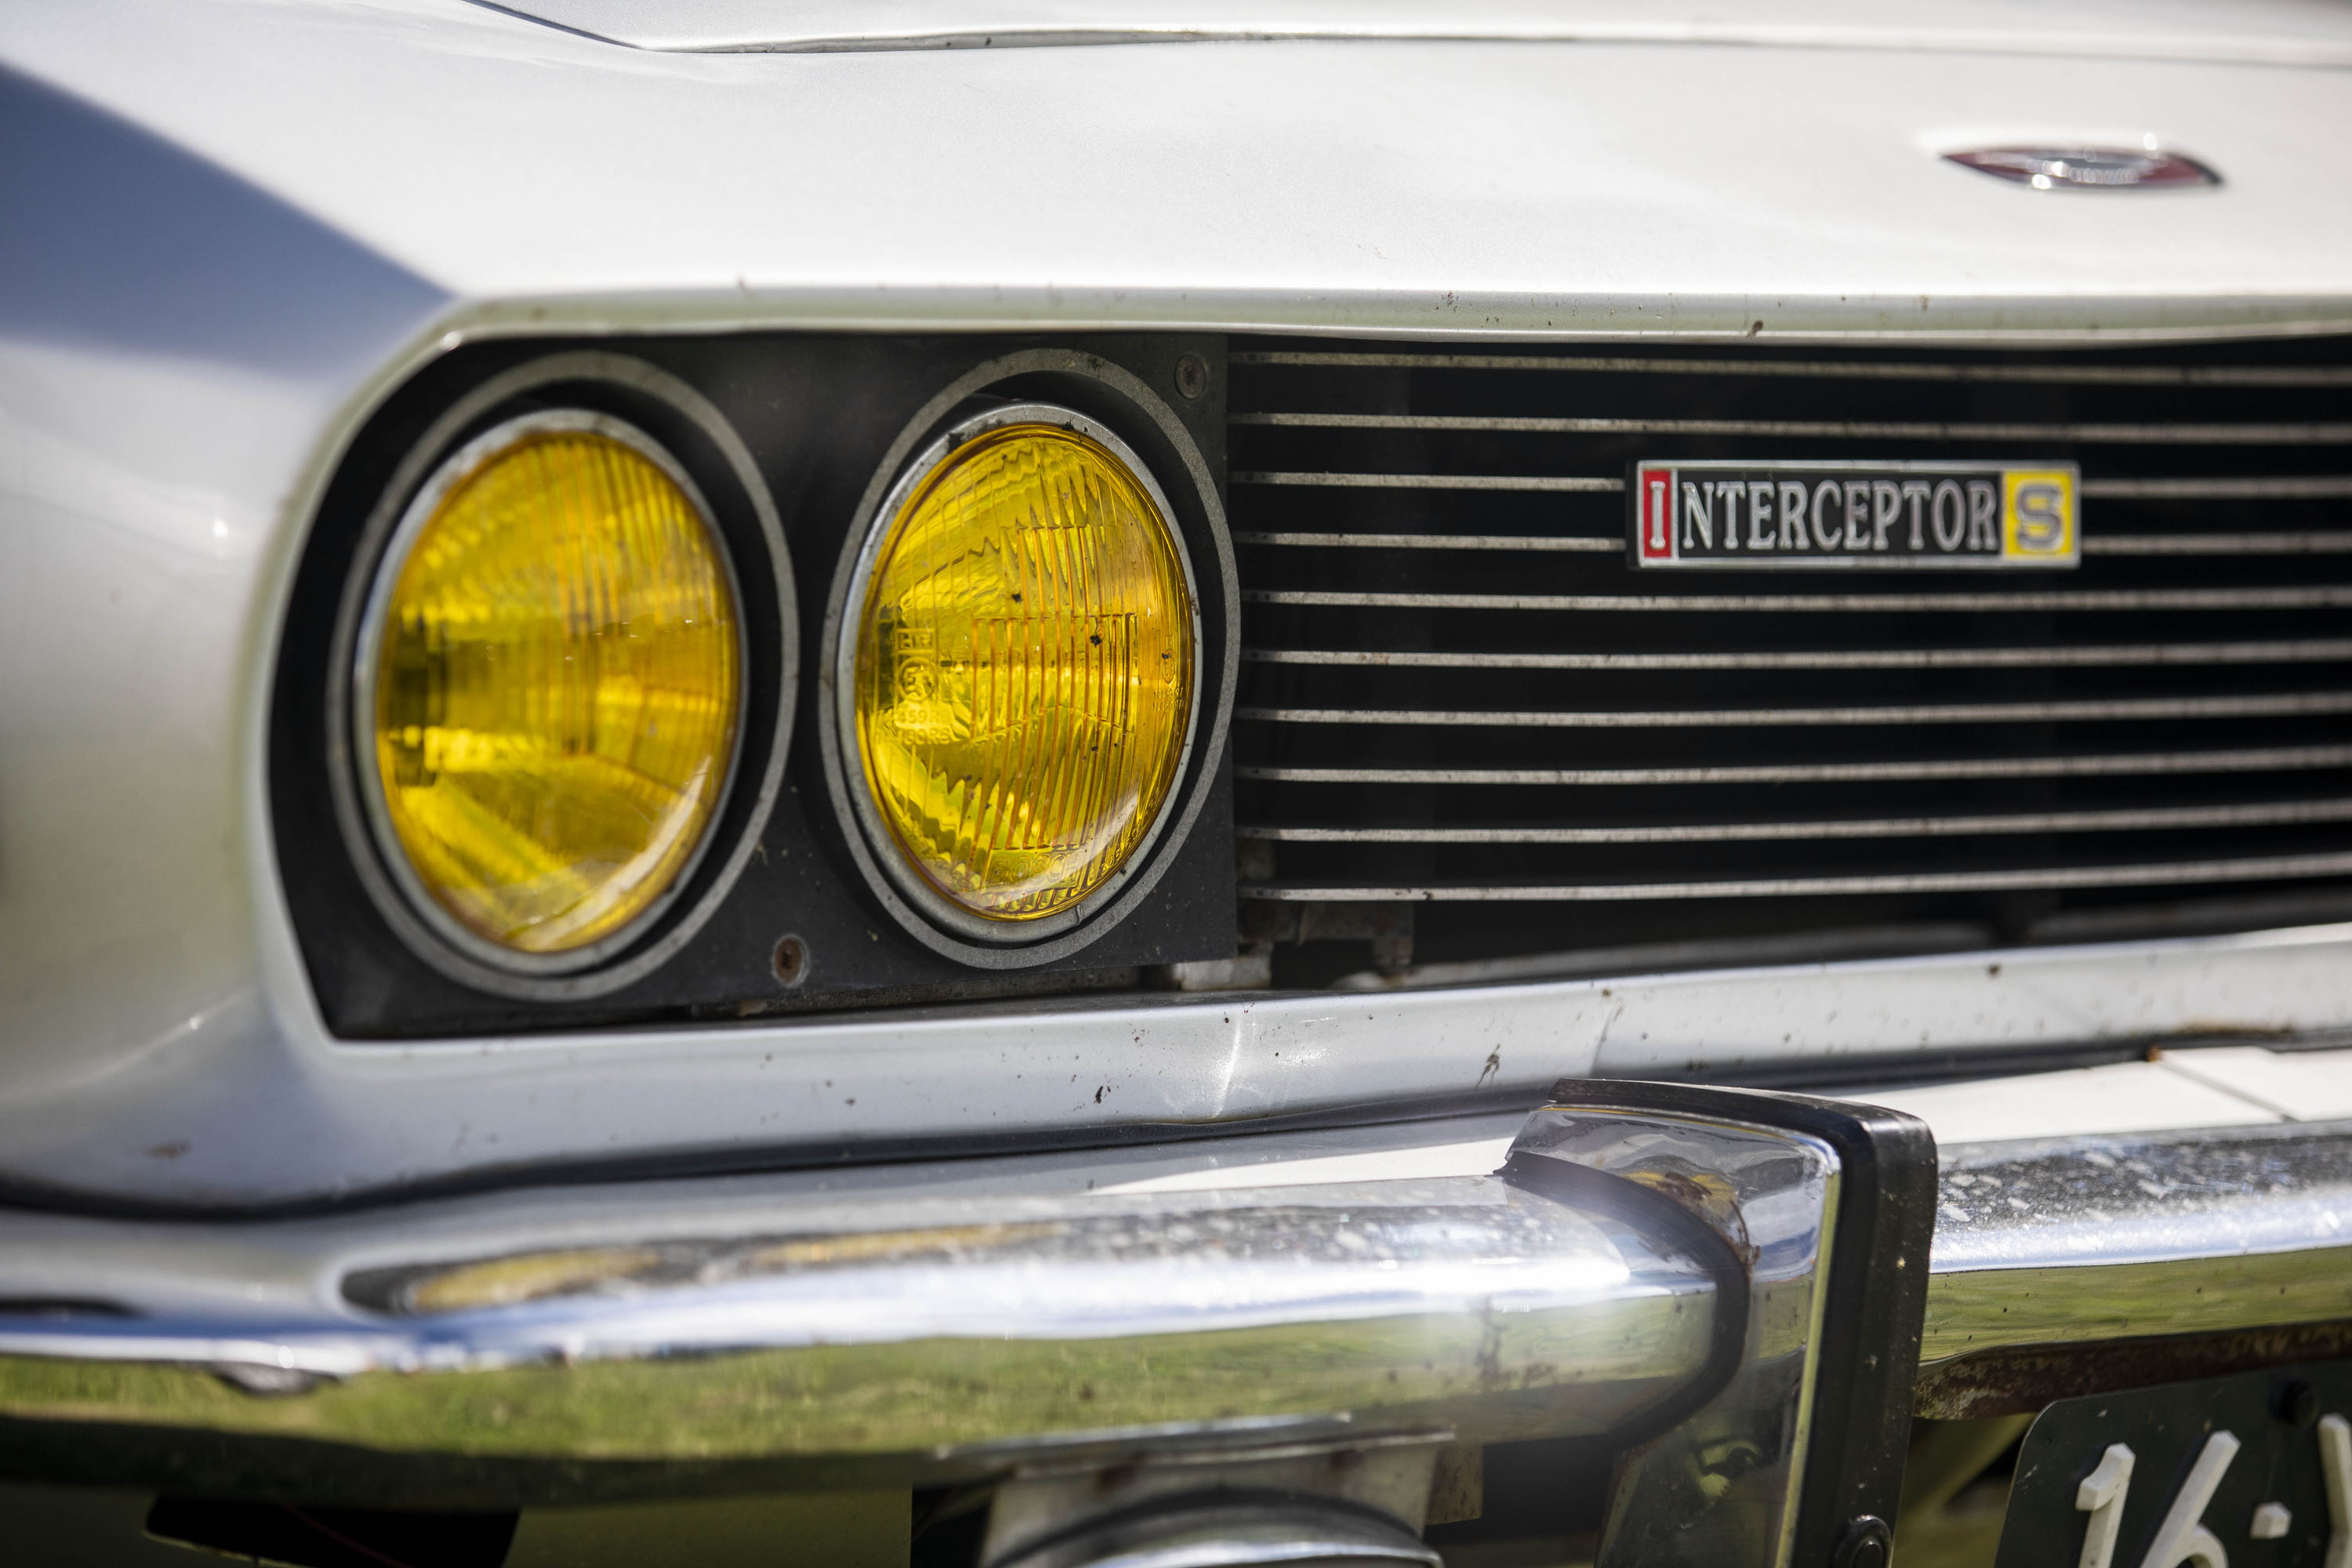 Jensen Interceptor grille